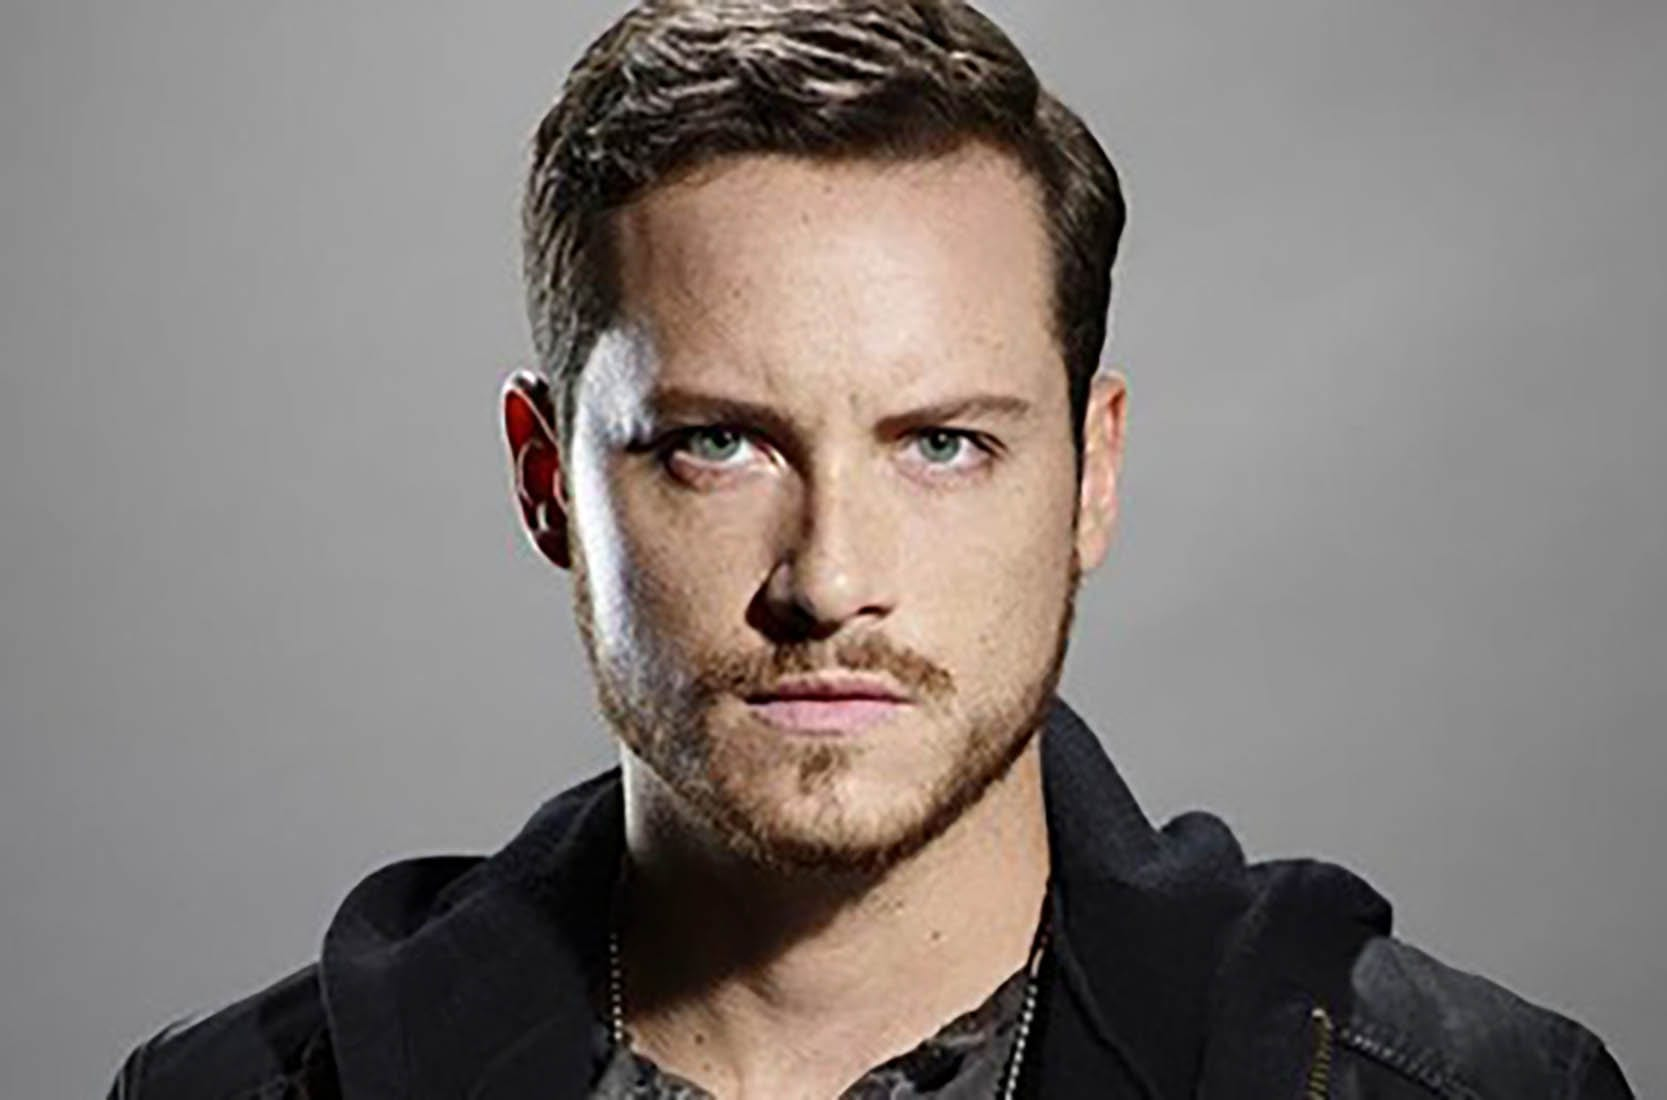 Jesse Lee Soffer as will munson